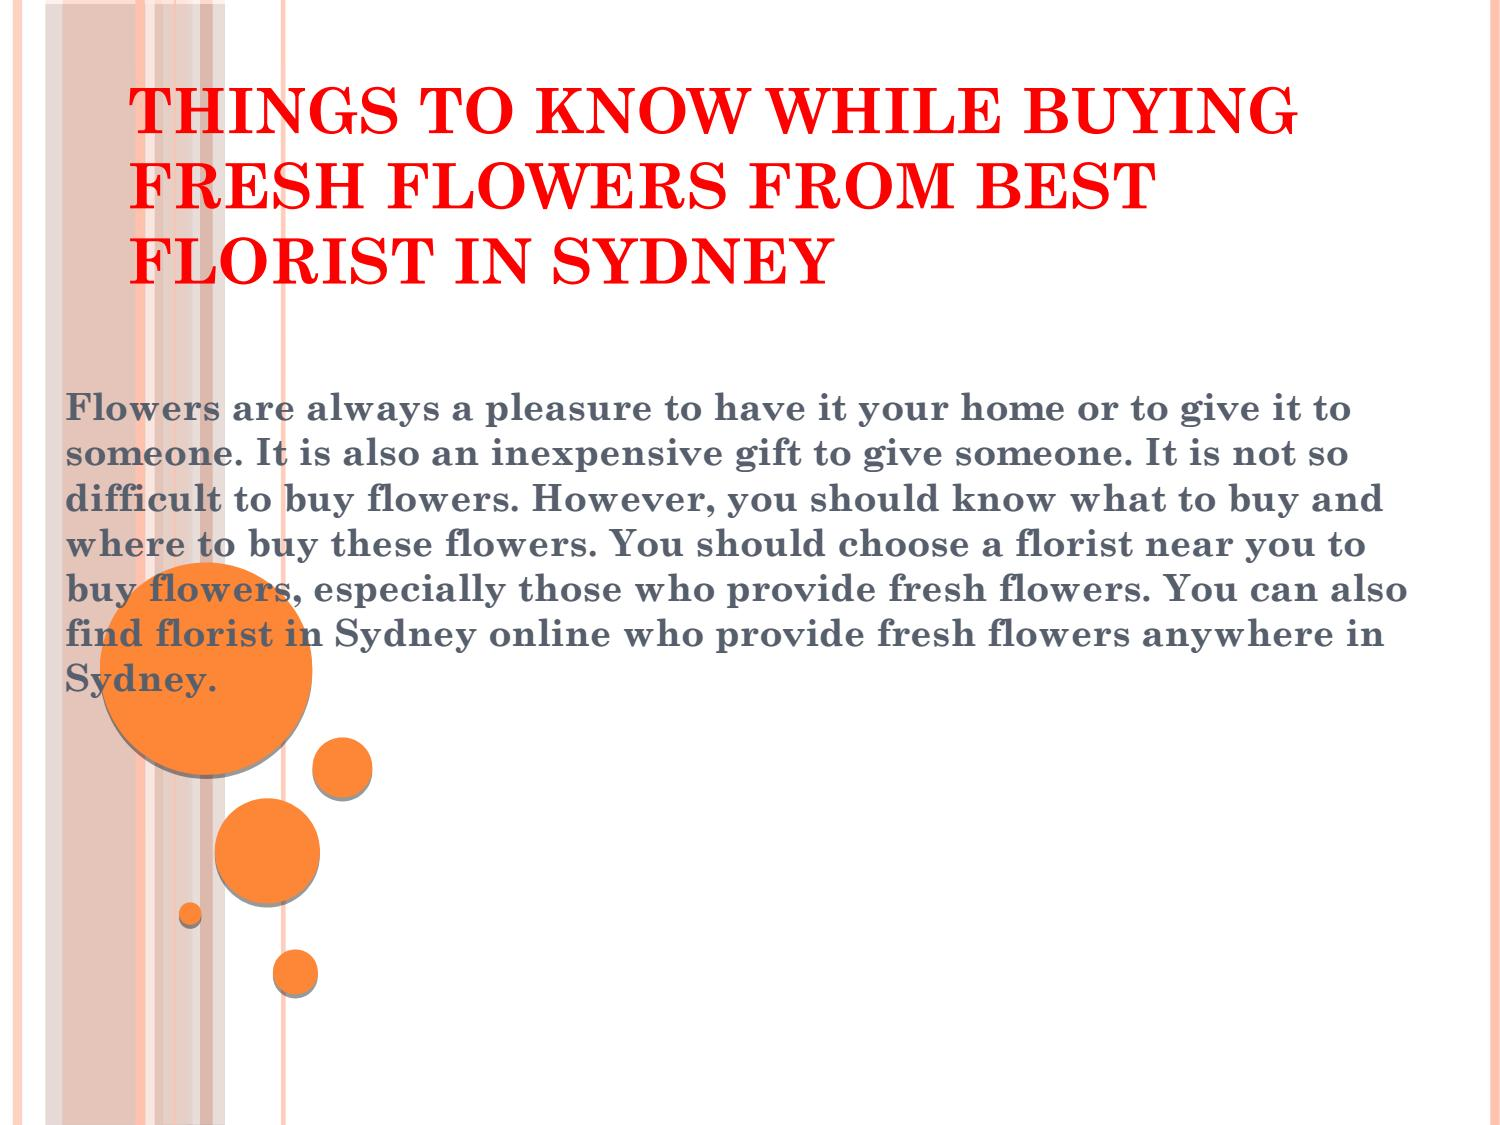 Things To Know While Buying Fresh Flowers From Best Florist